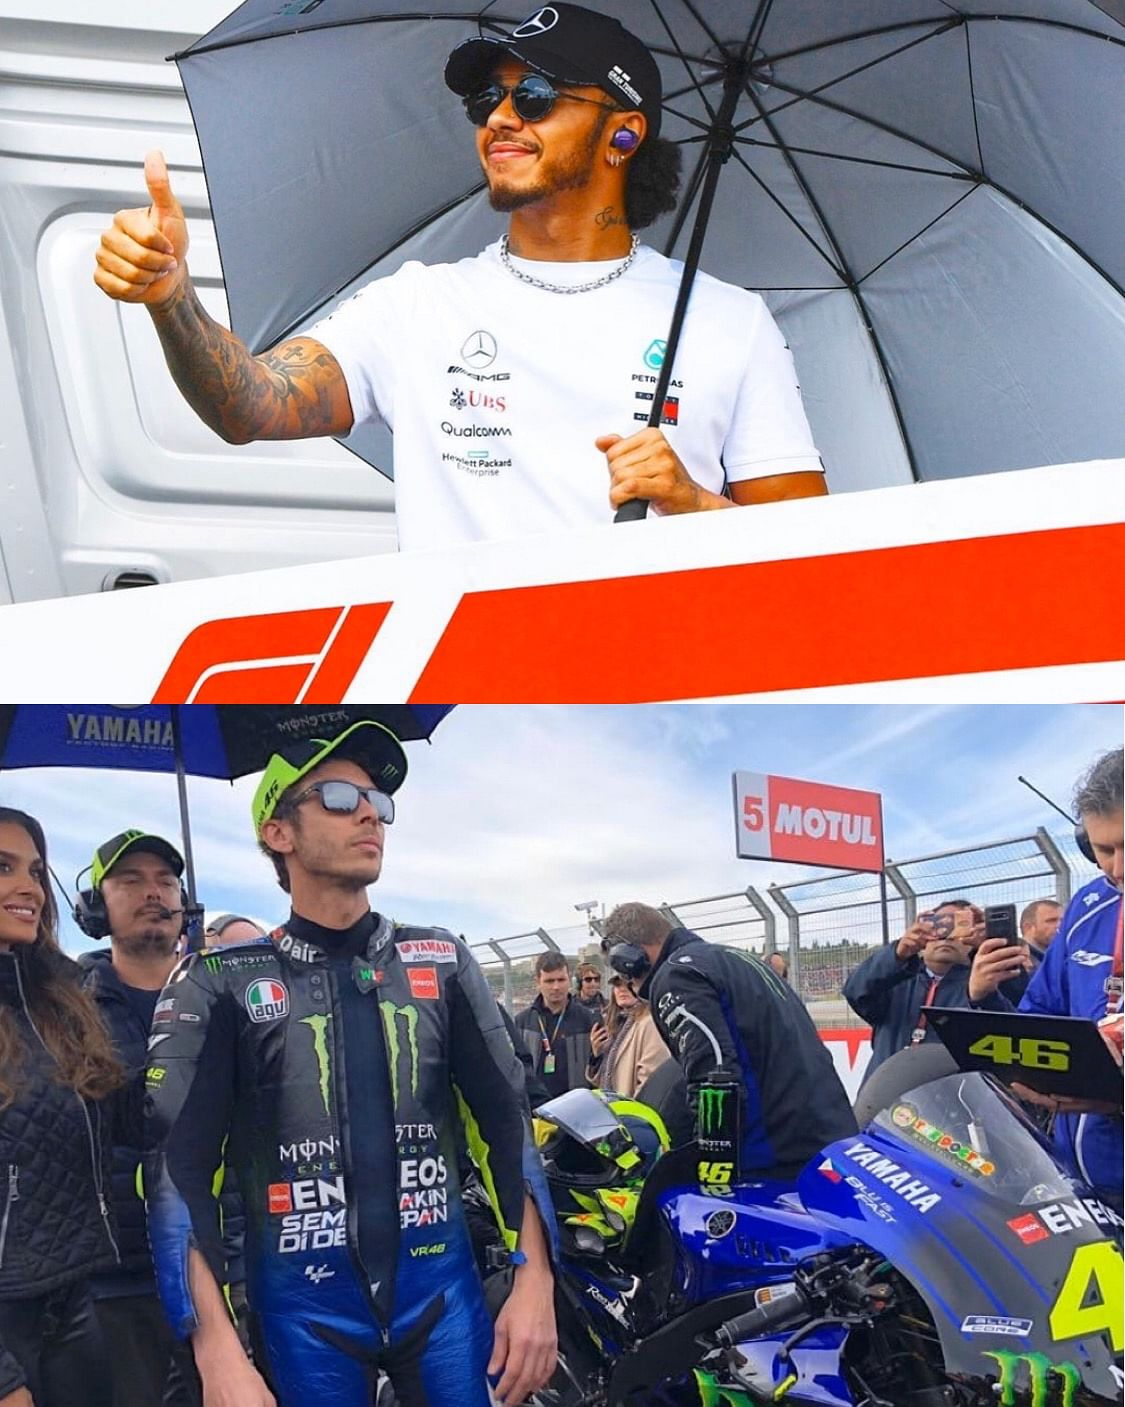 Valentino Rossi and Lewis Hamilton will swap vehicles in Valencia next month